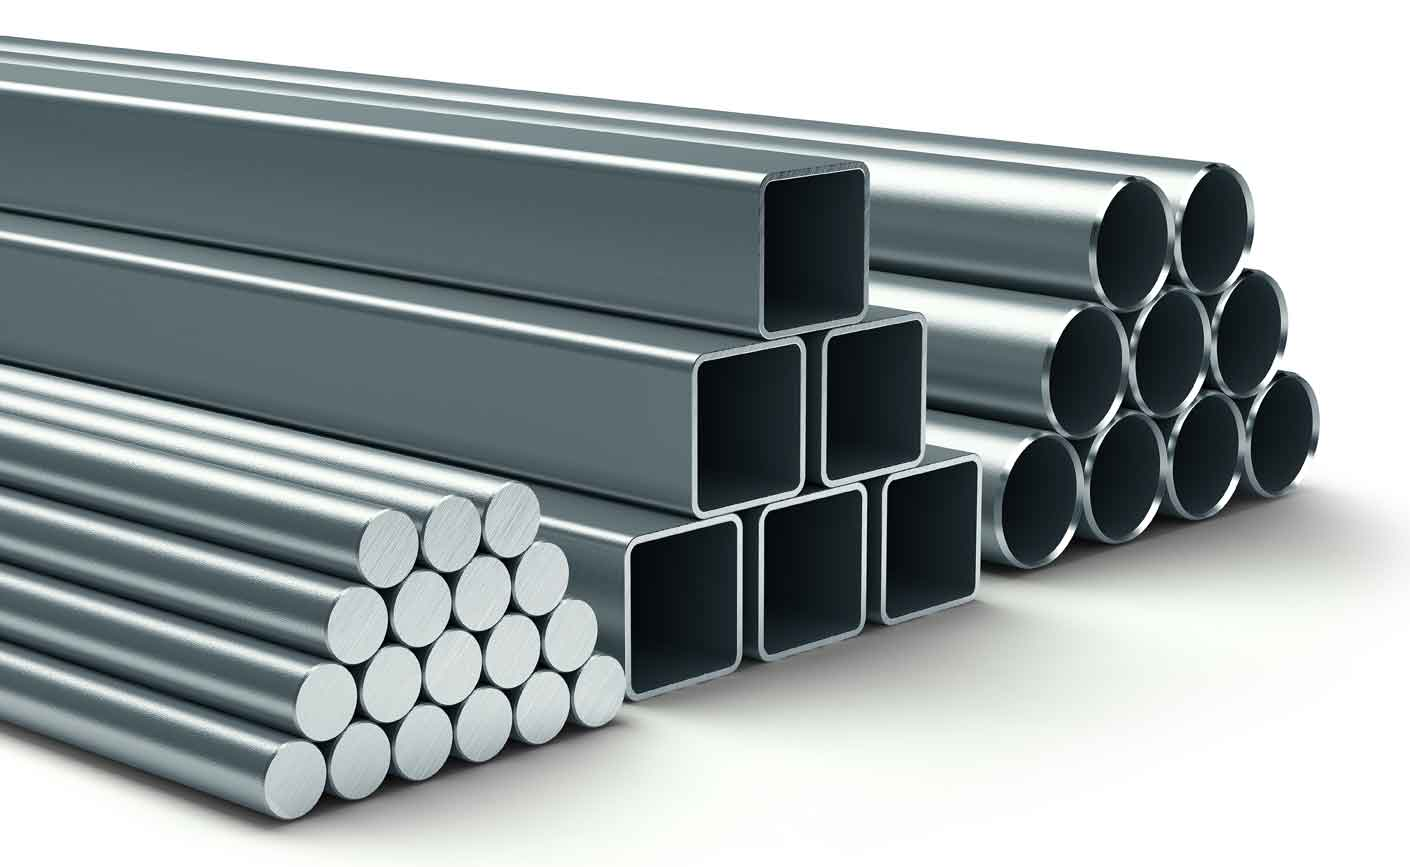 steel-pipe-small-file.jpg